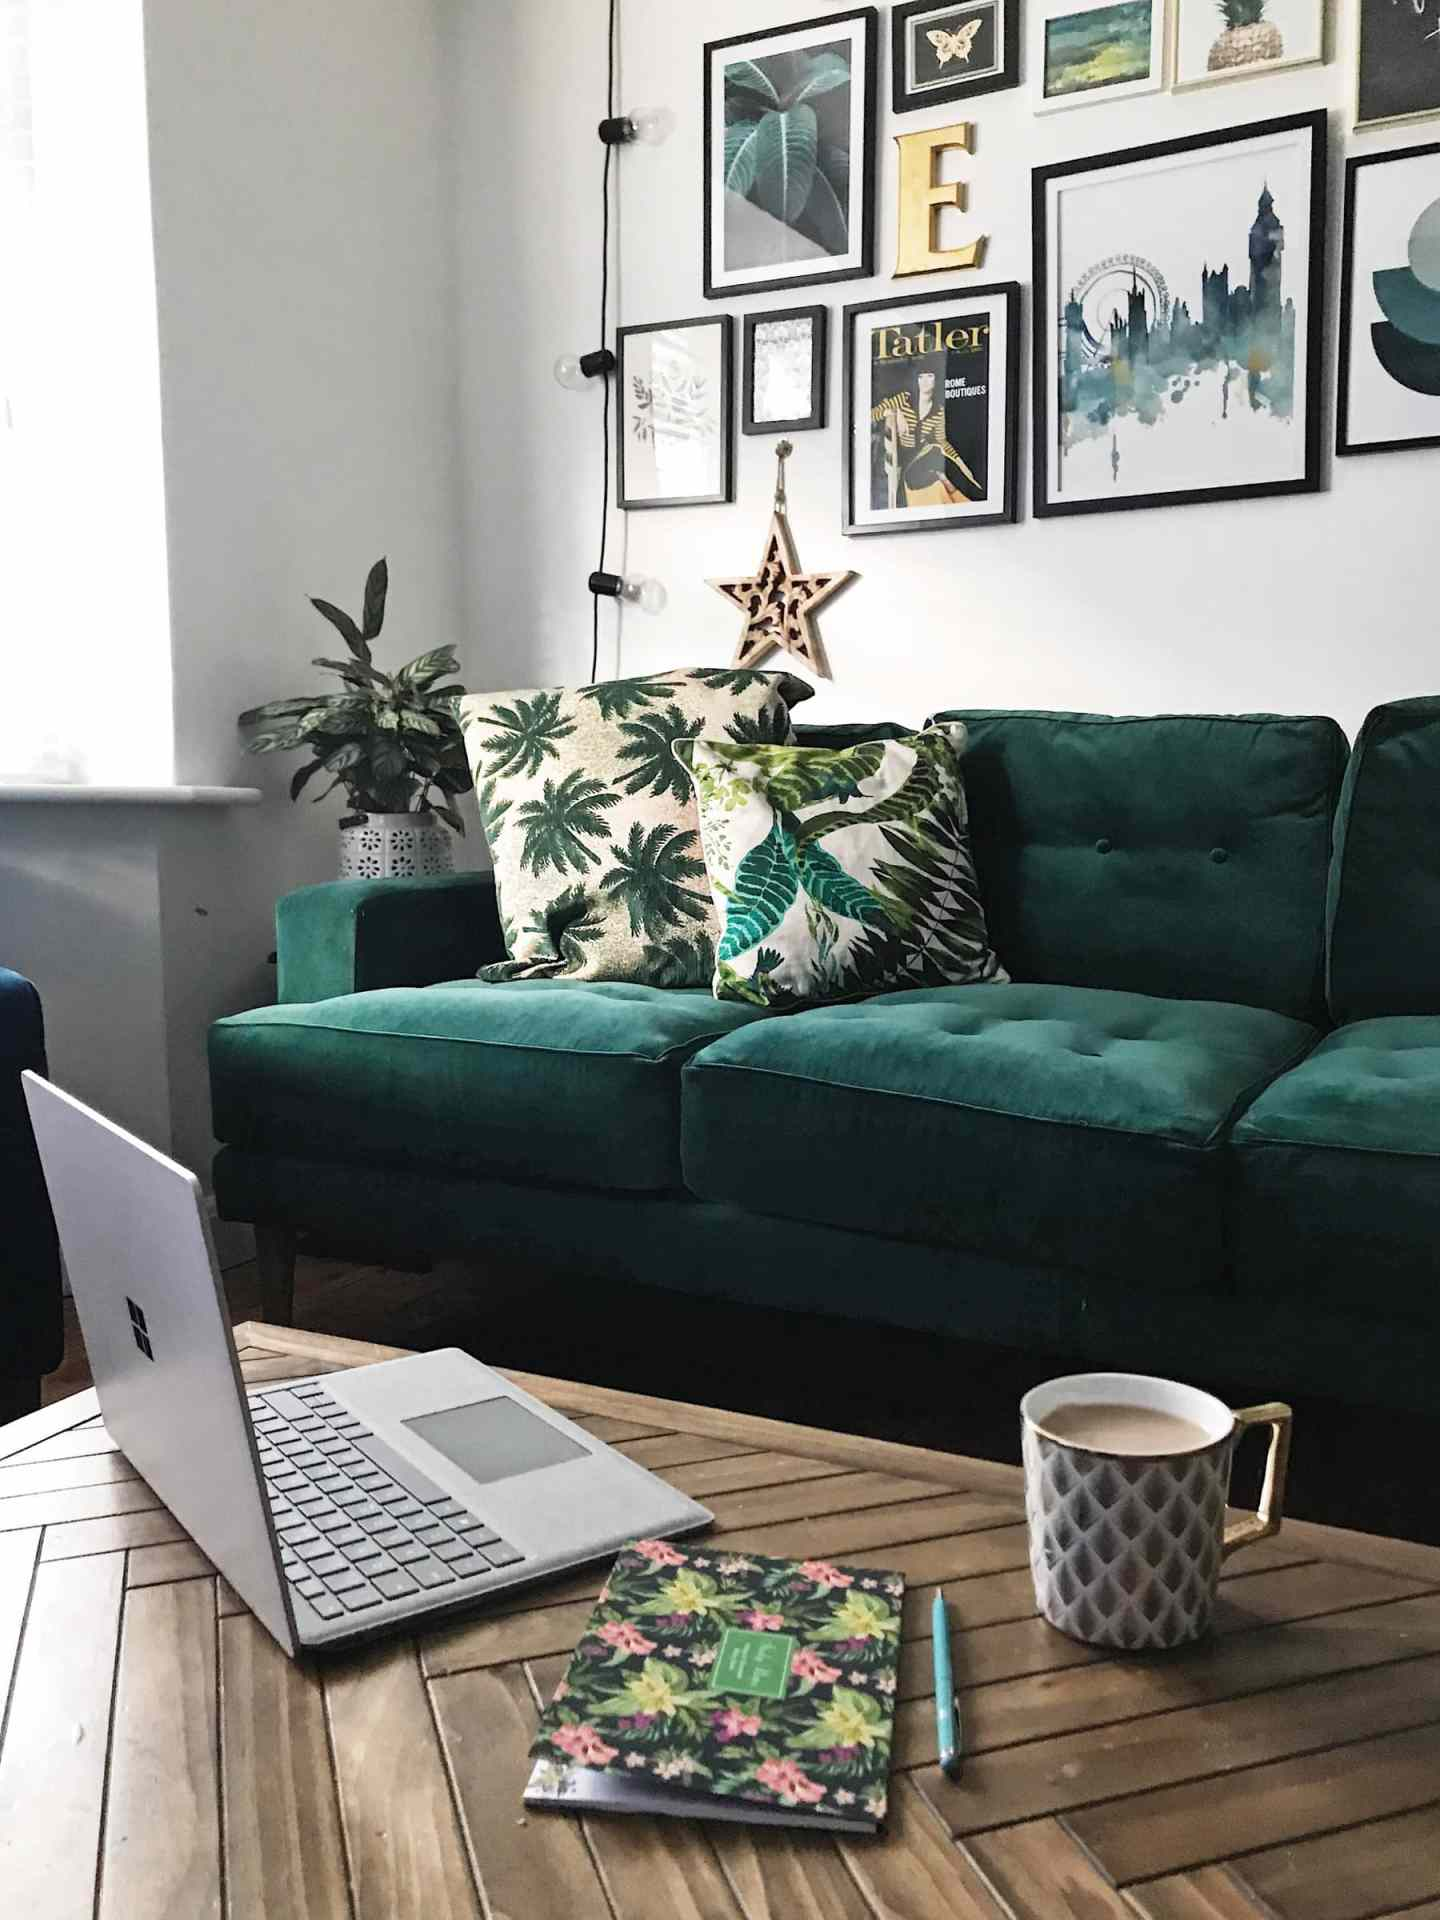 a bloggers work place. the sofa, coffee table and laptop